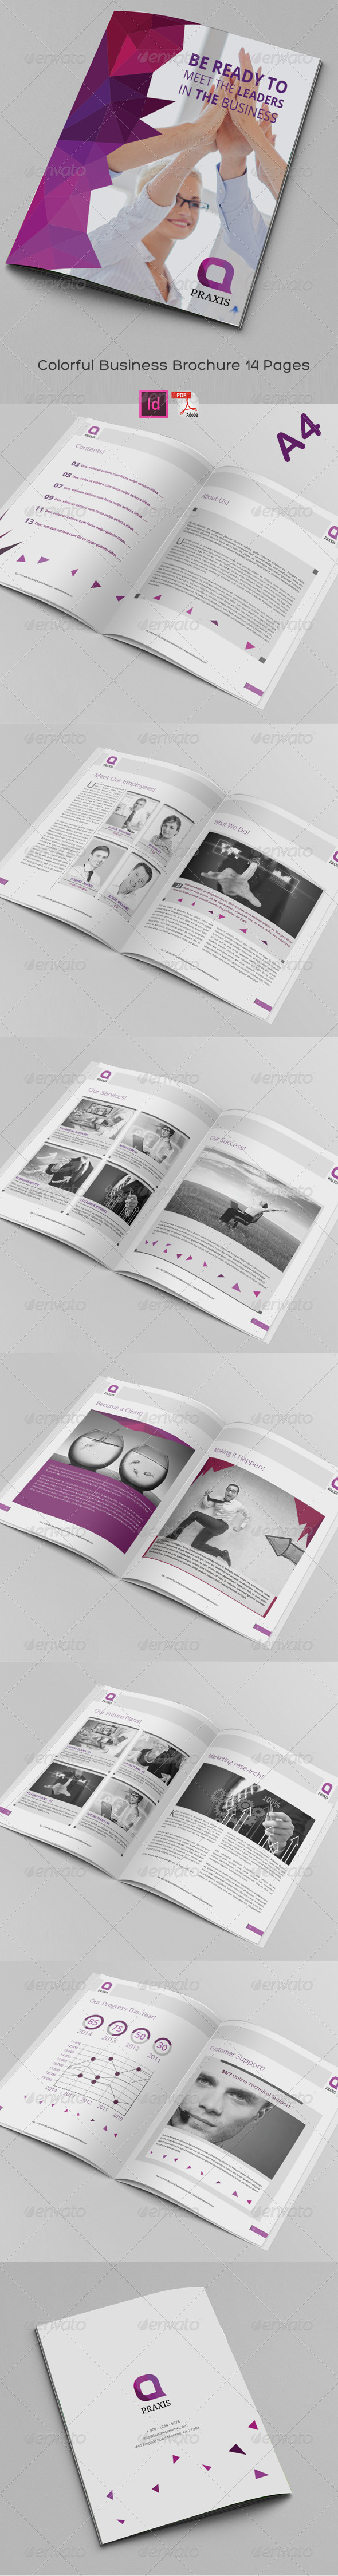 GraphicRiver Colorful Business Brochure 14 Pages 8173263